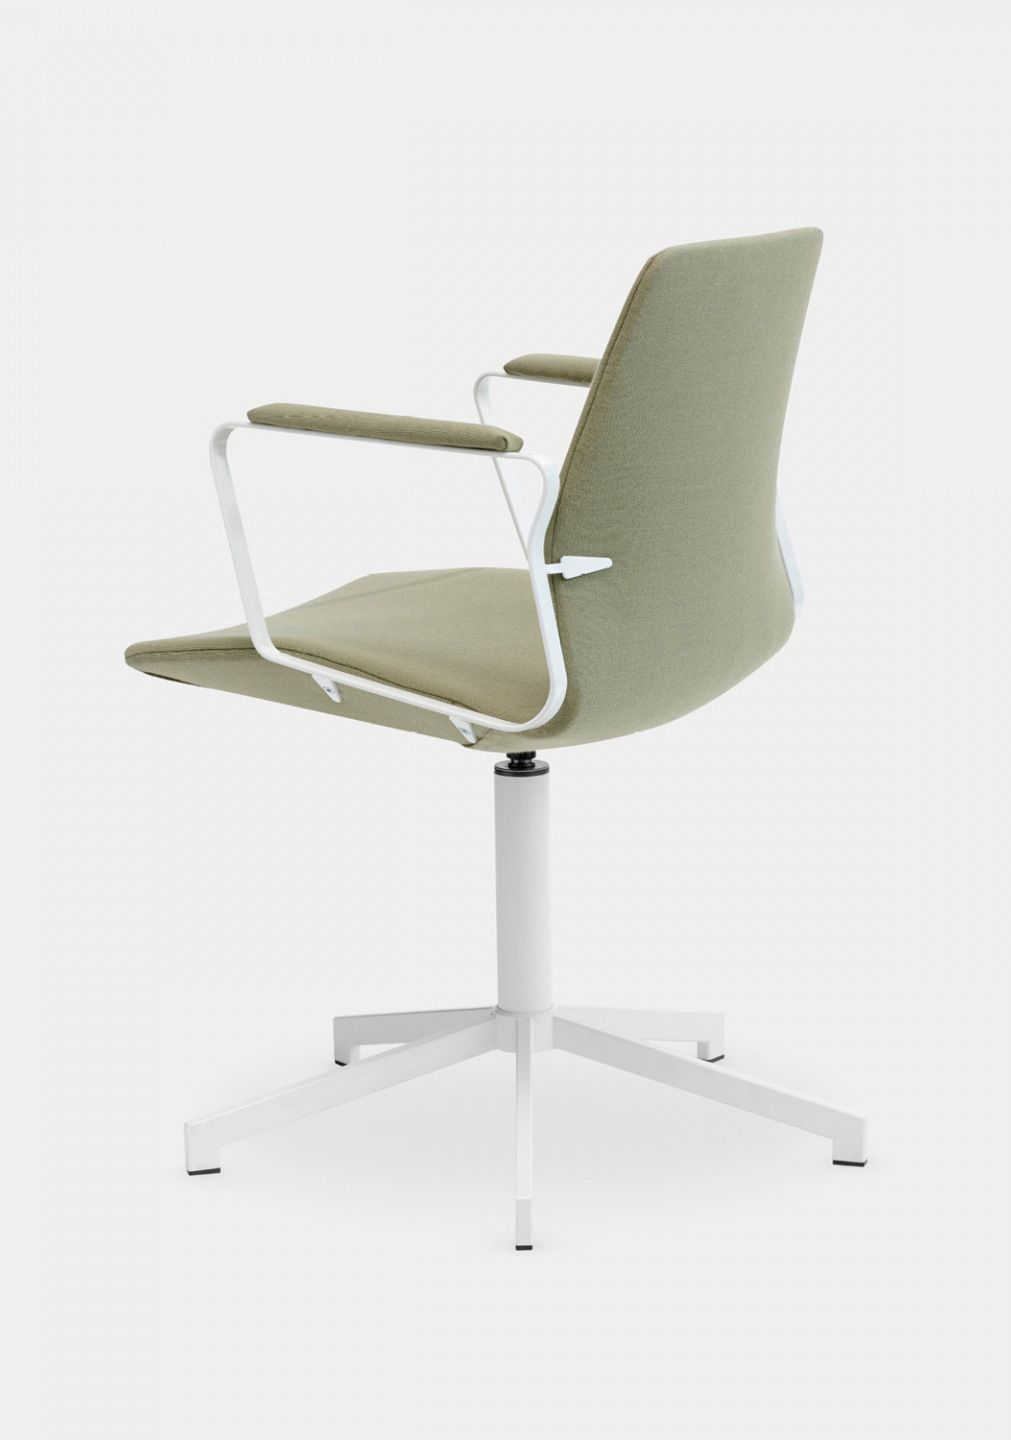 Industrial Design Trends And Inspiration Lemanoosh Furniture Design Chair Design Mid Century Modern Office Chair